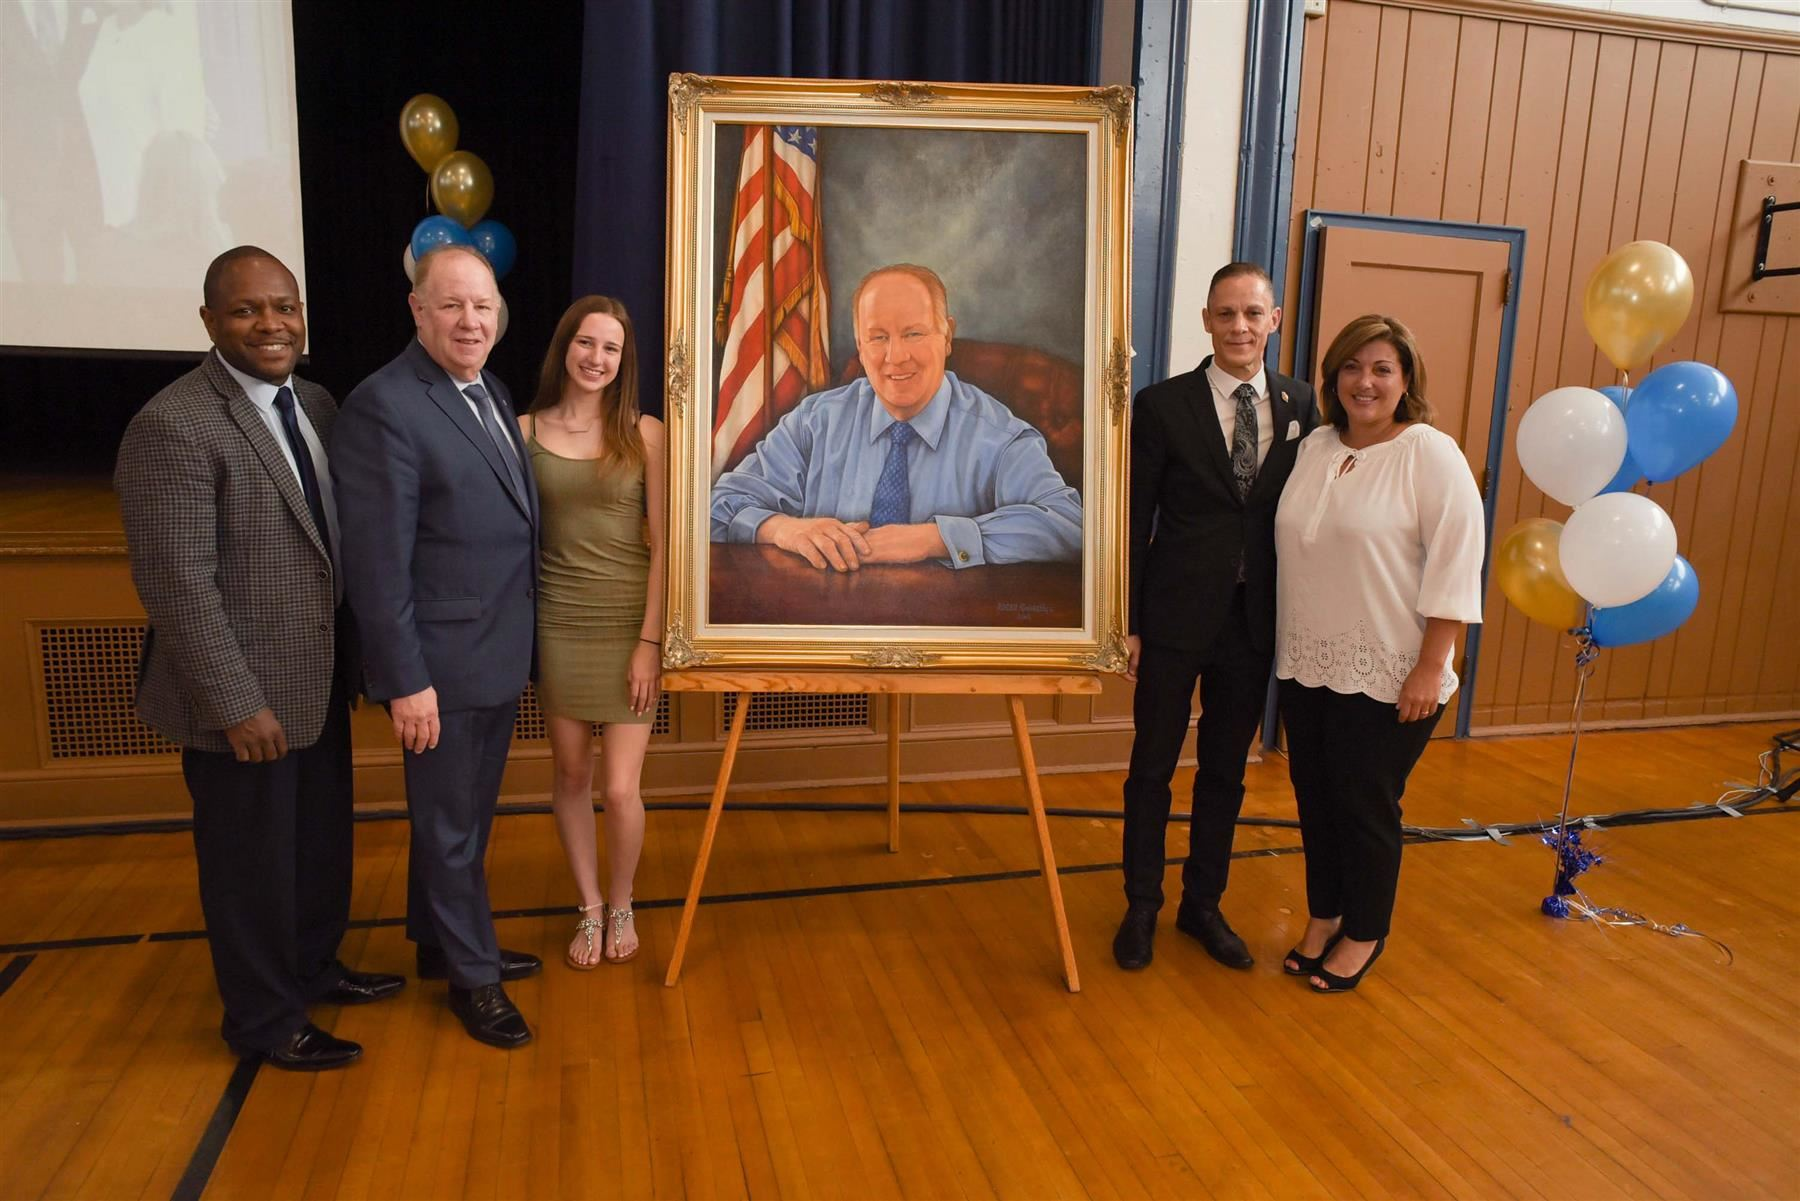 Portrait Unveiling Ceremony for City of Elizabeth Mayor J. Christian Bollwage